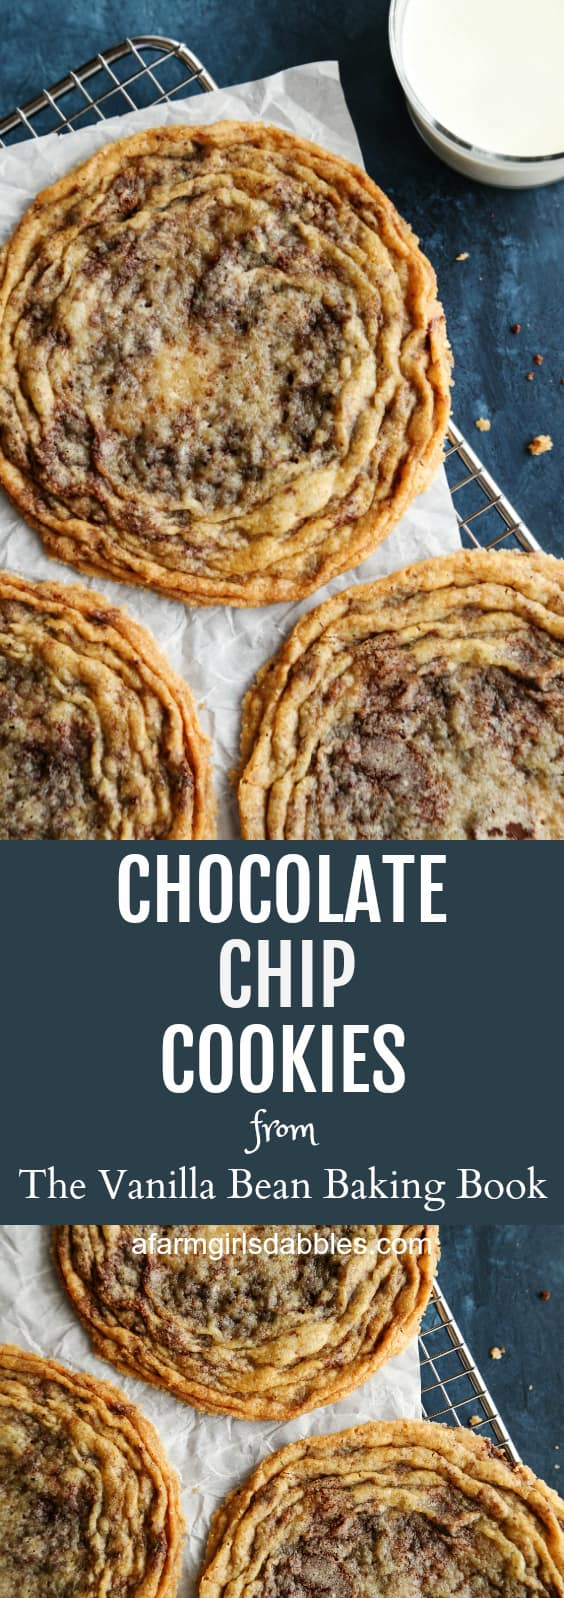 Chocolate Chip Cookies from The Vanilla Bean Baking Book at afarmgirlsdabbles.com - These chocolate chip cookies are like no other. They are big-as-your-head and ultra flat, with a soft and chewy center, surrounded by crinkly, wrinkly prettiness that is the perfect texture of crispy. #cookies #chocolatechipcookies #chocolate #chocolatechip #vanillabeanbakingbook